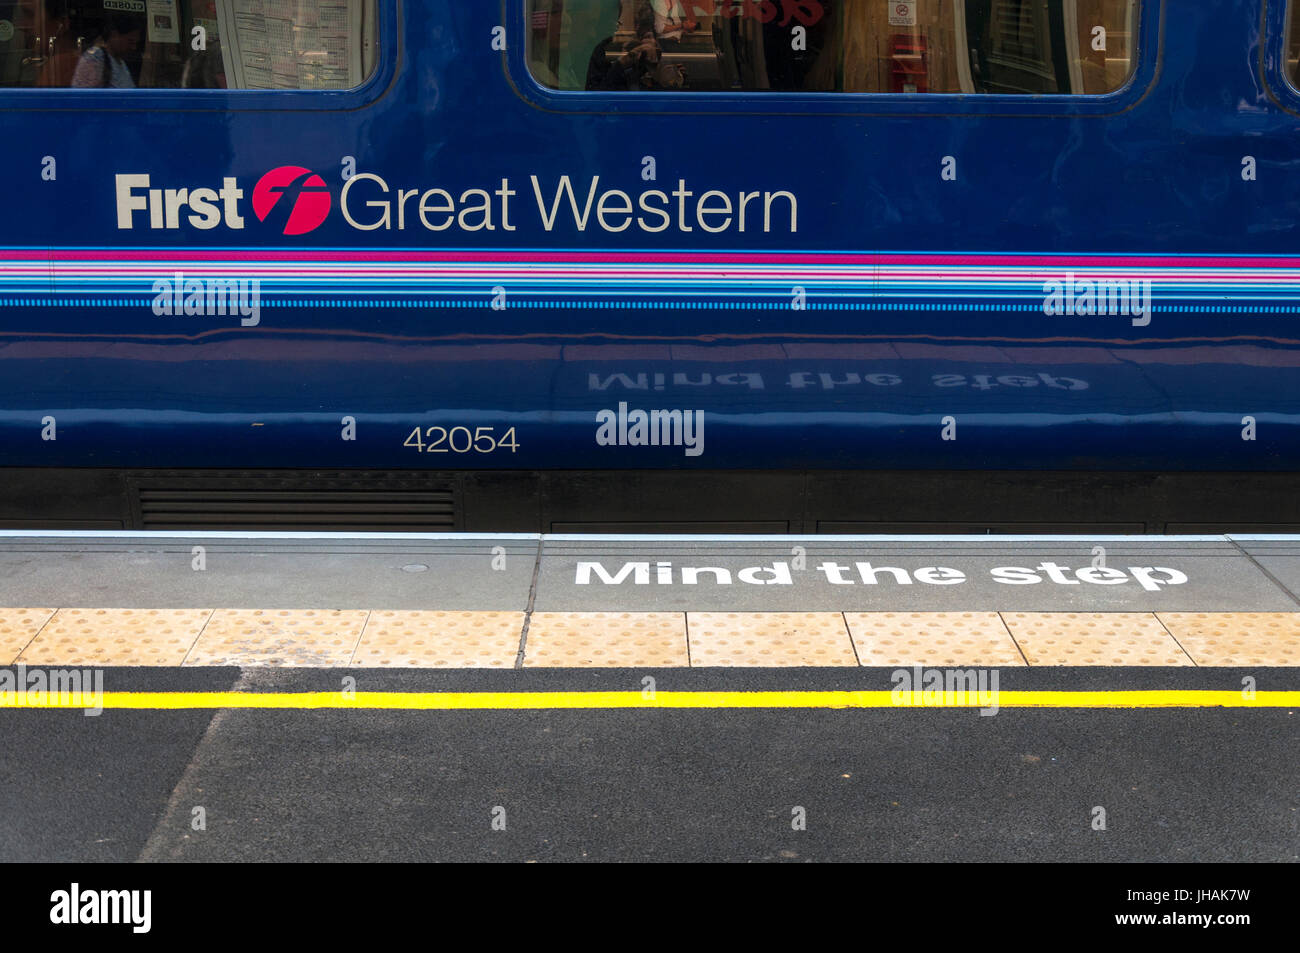 Mind the Step safety warning and a First Great Western train at Bath Spa railway station, Somerset, England, UK Stock Photo